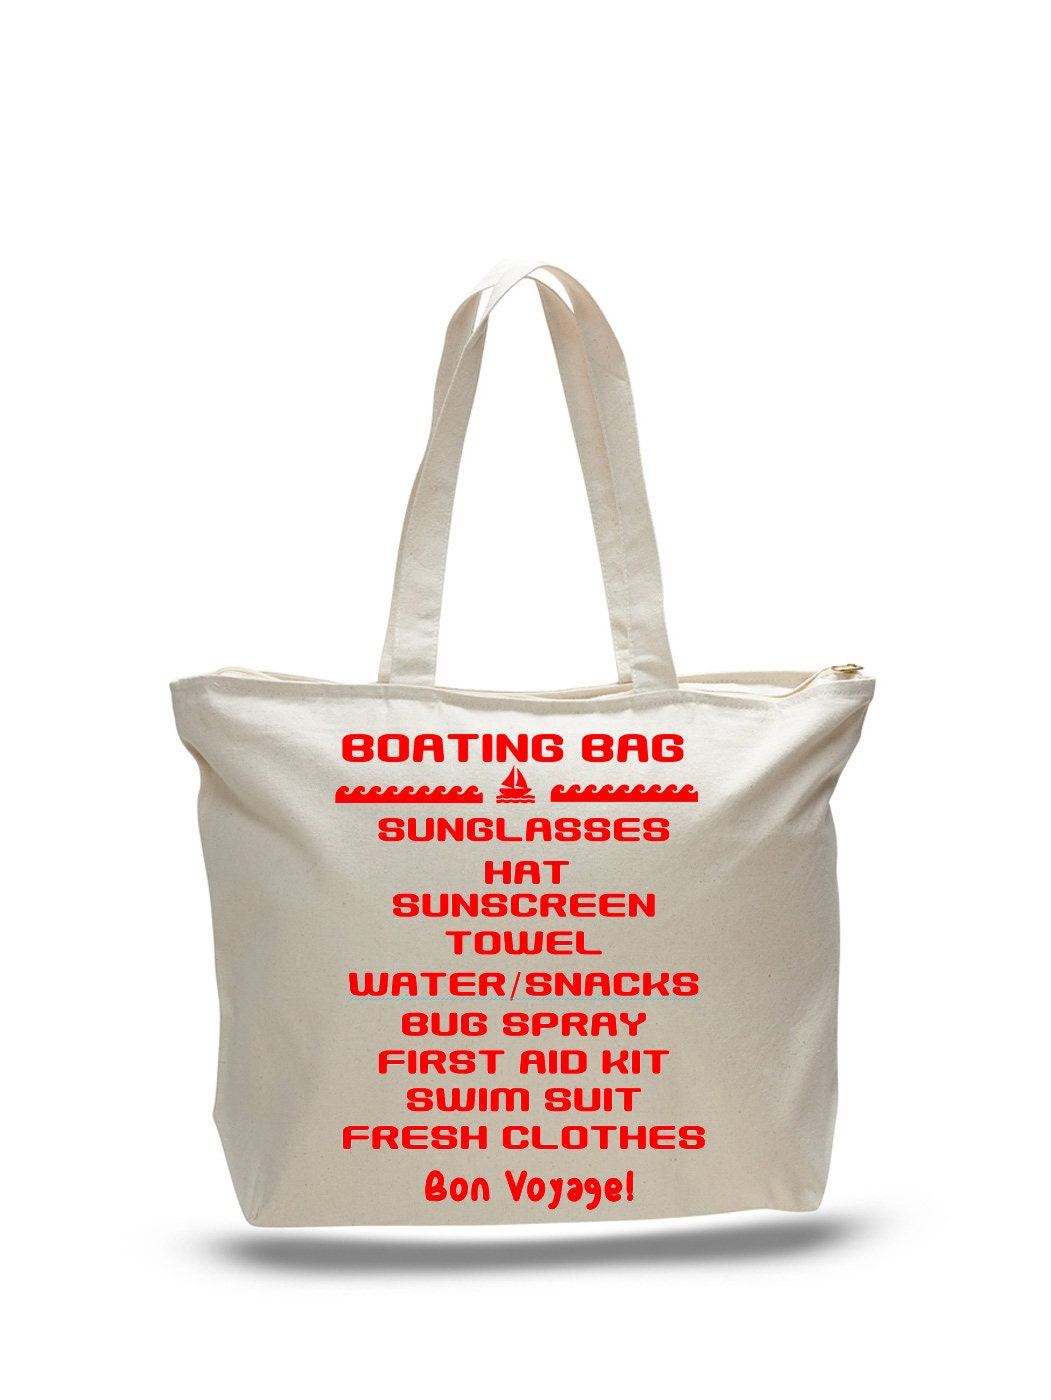 Boating Gift But Did We Sink? Sailing Present Funny Sailor Gift Yachting Gift Funny Boating Tote Bag